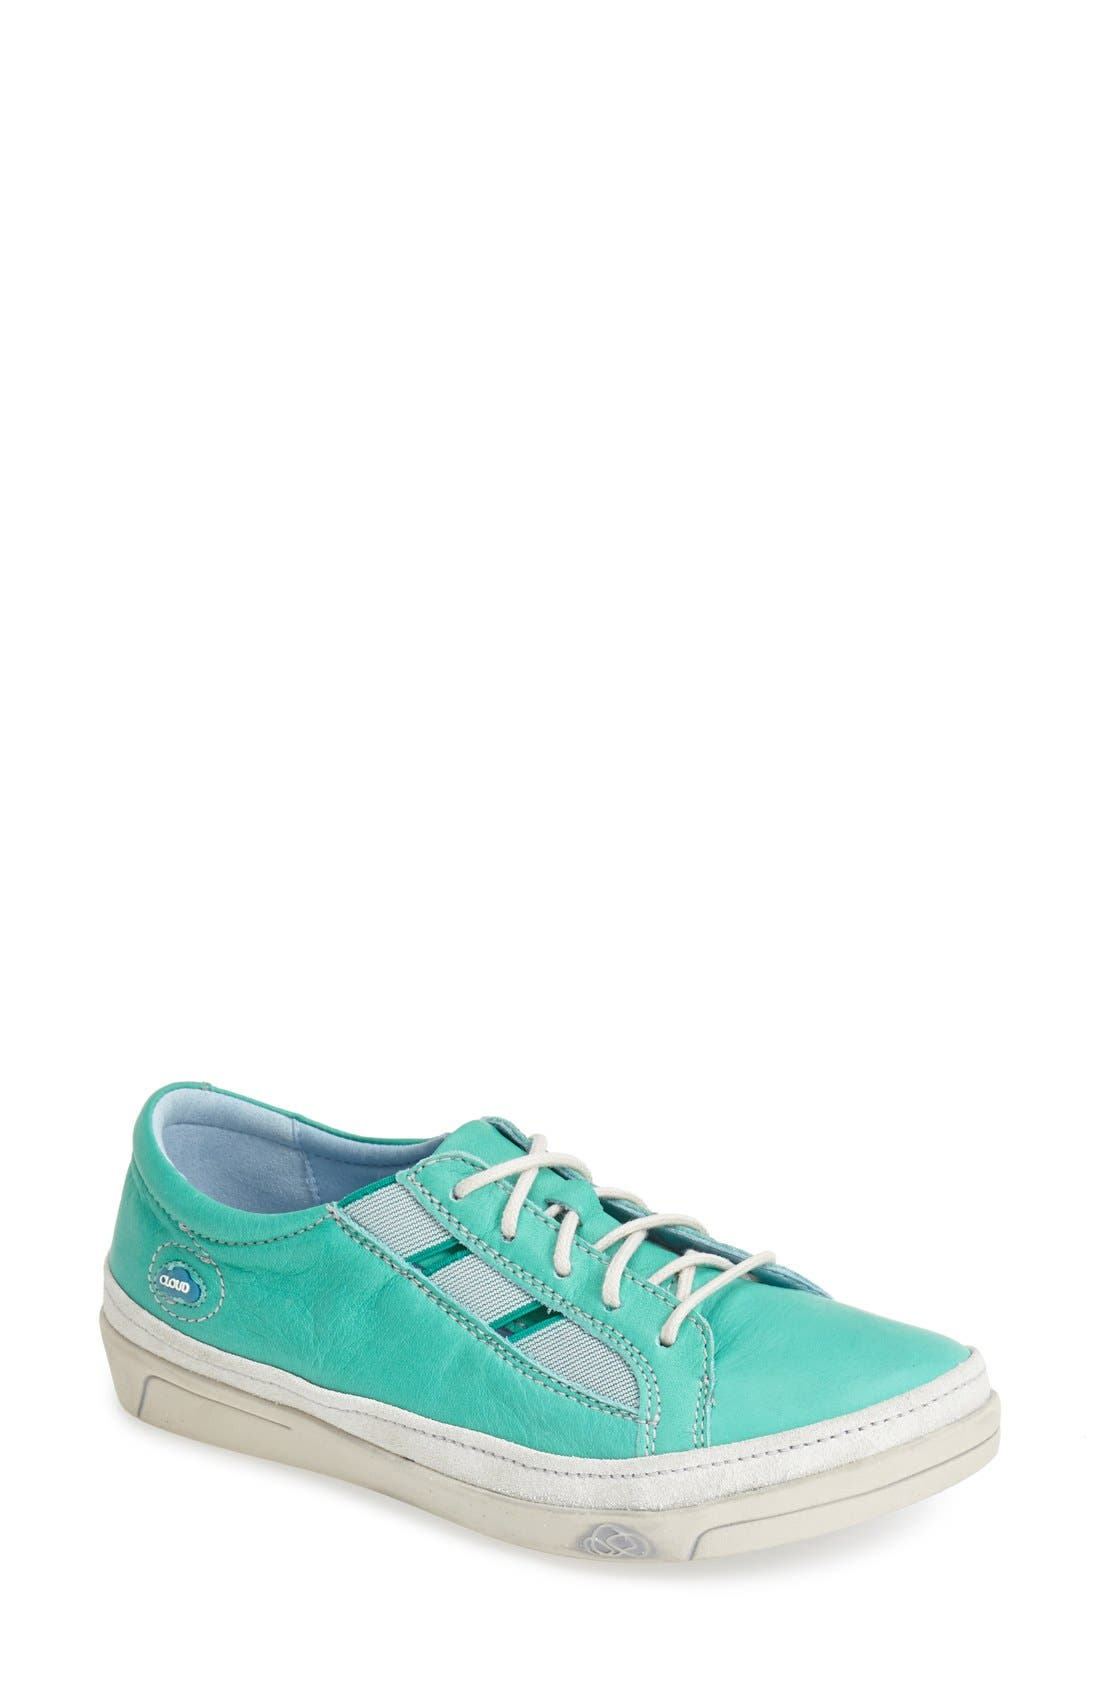 Main Image - CLOUD 'Amazonas' Leather Sneaker (Women)